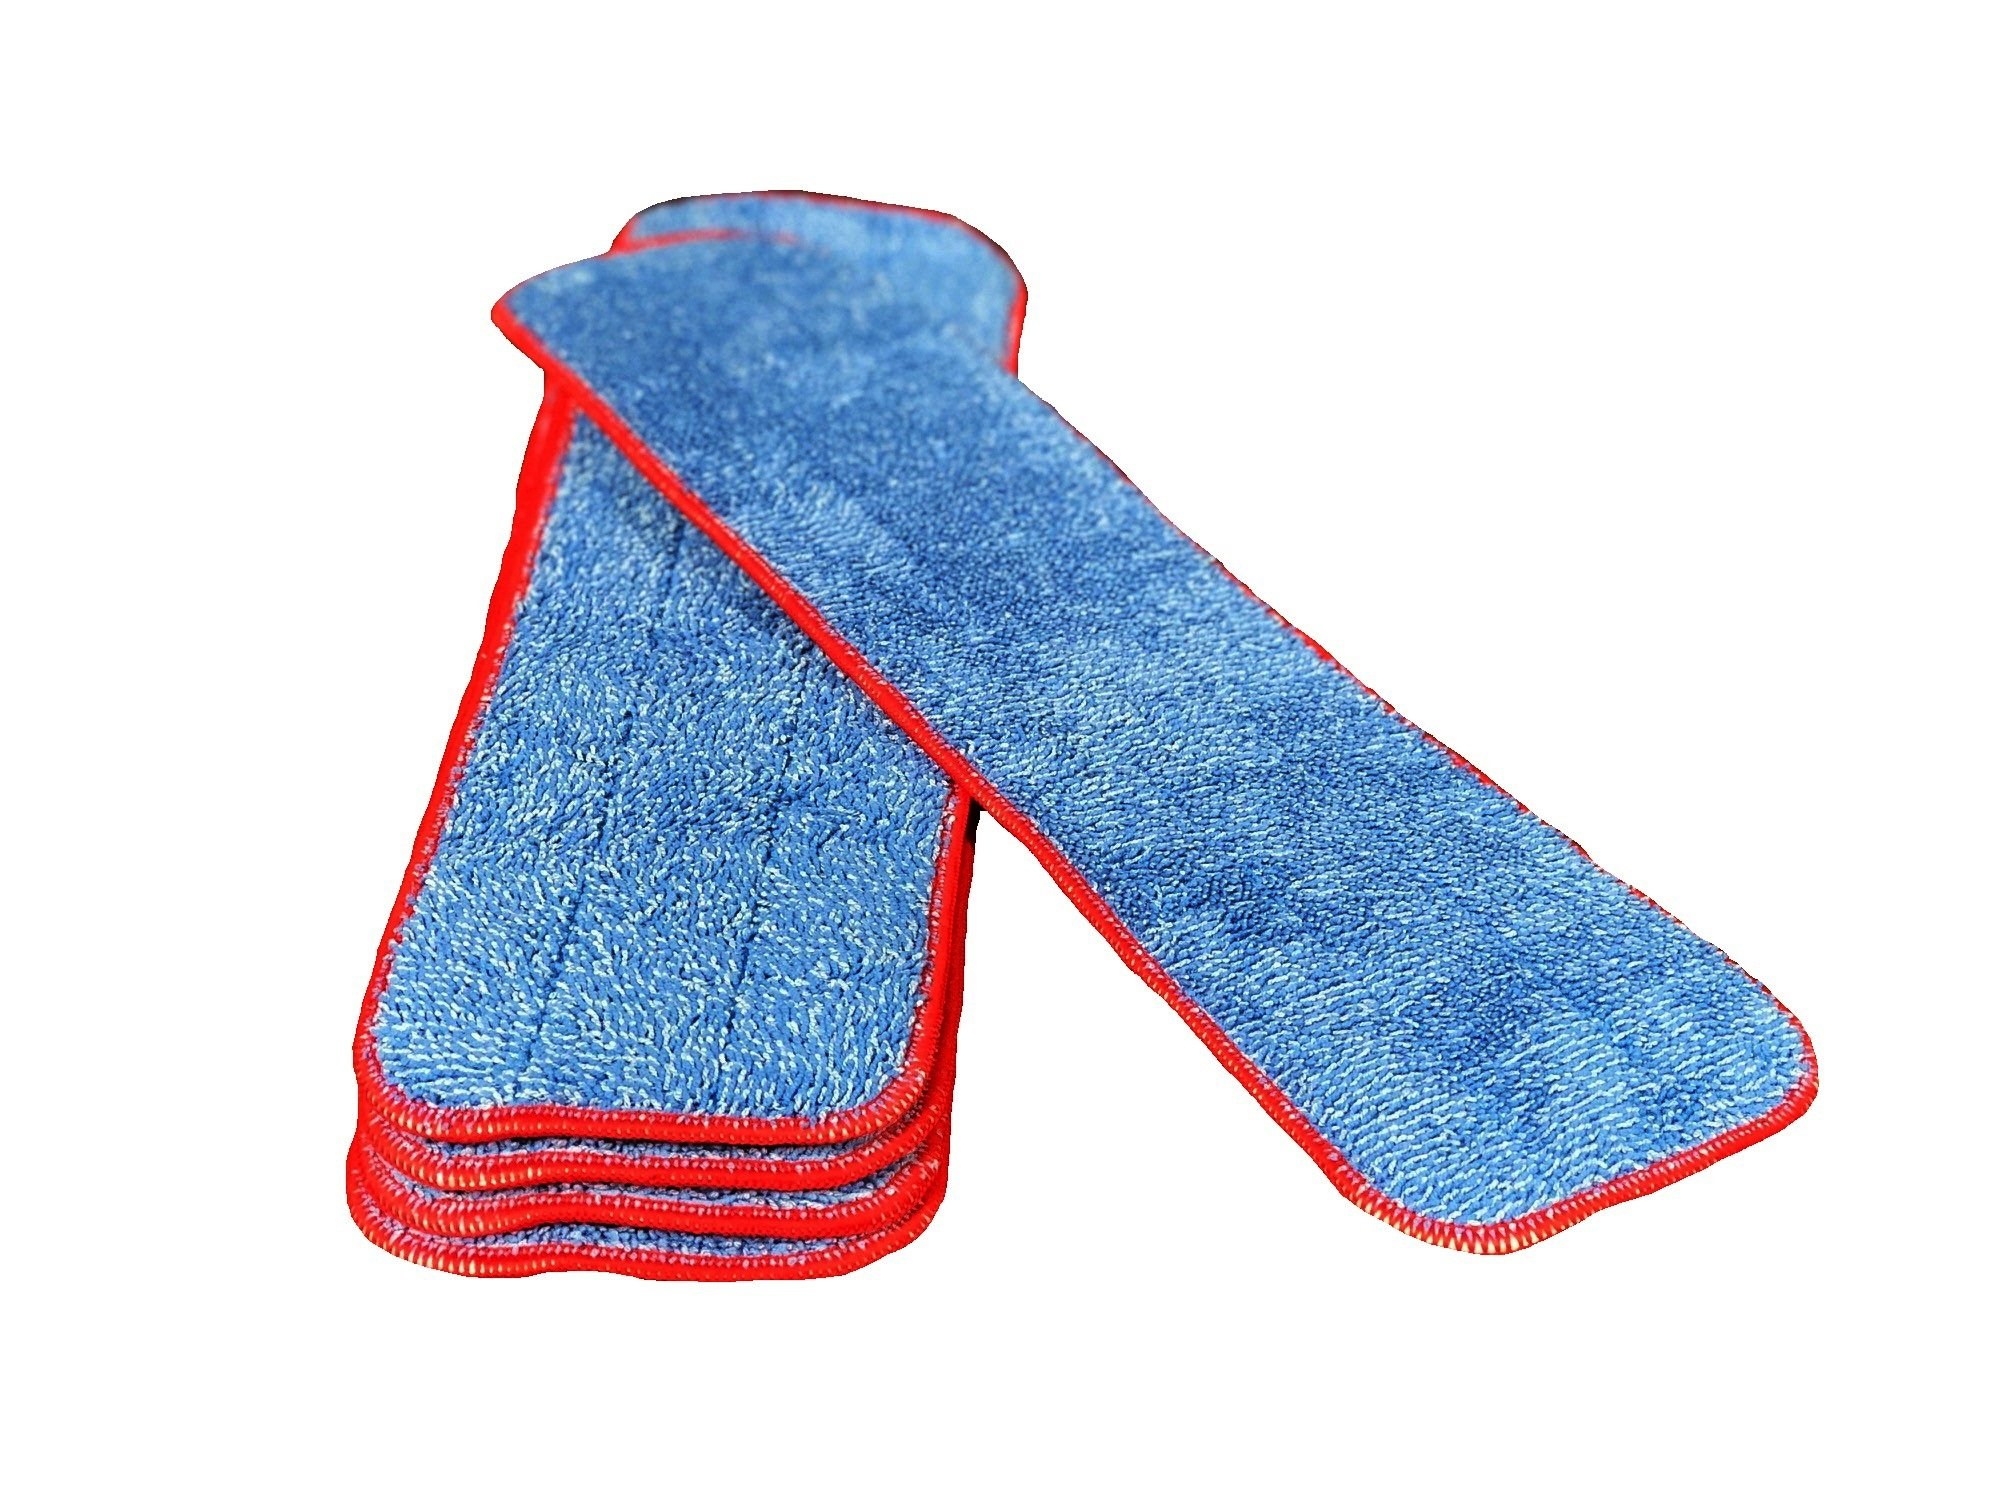 18'' Inch Microfiber Mop Pad Refills Fits 16 to 18 Inch Mop Frames Wet & Dry Use Commercial Microfiber (5 Pack)